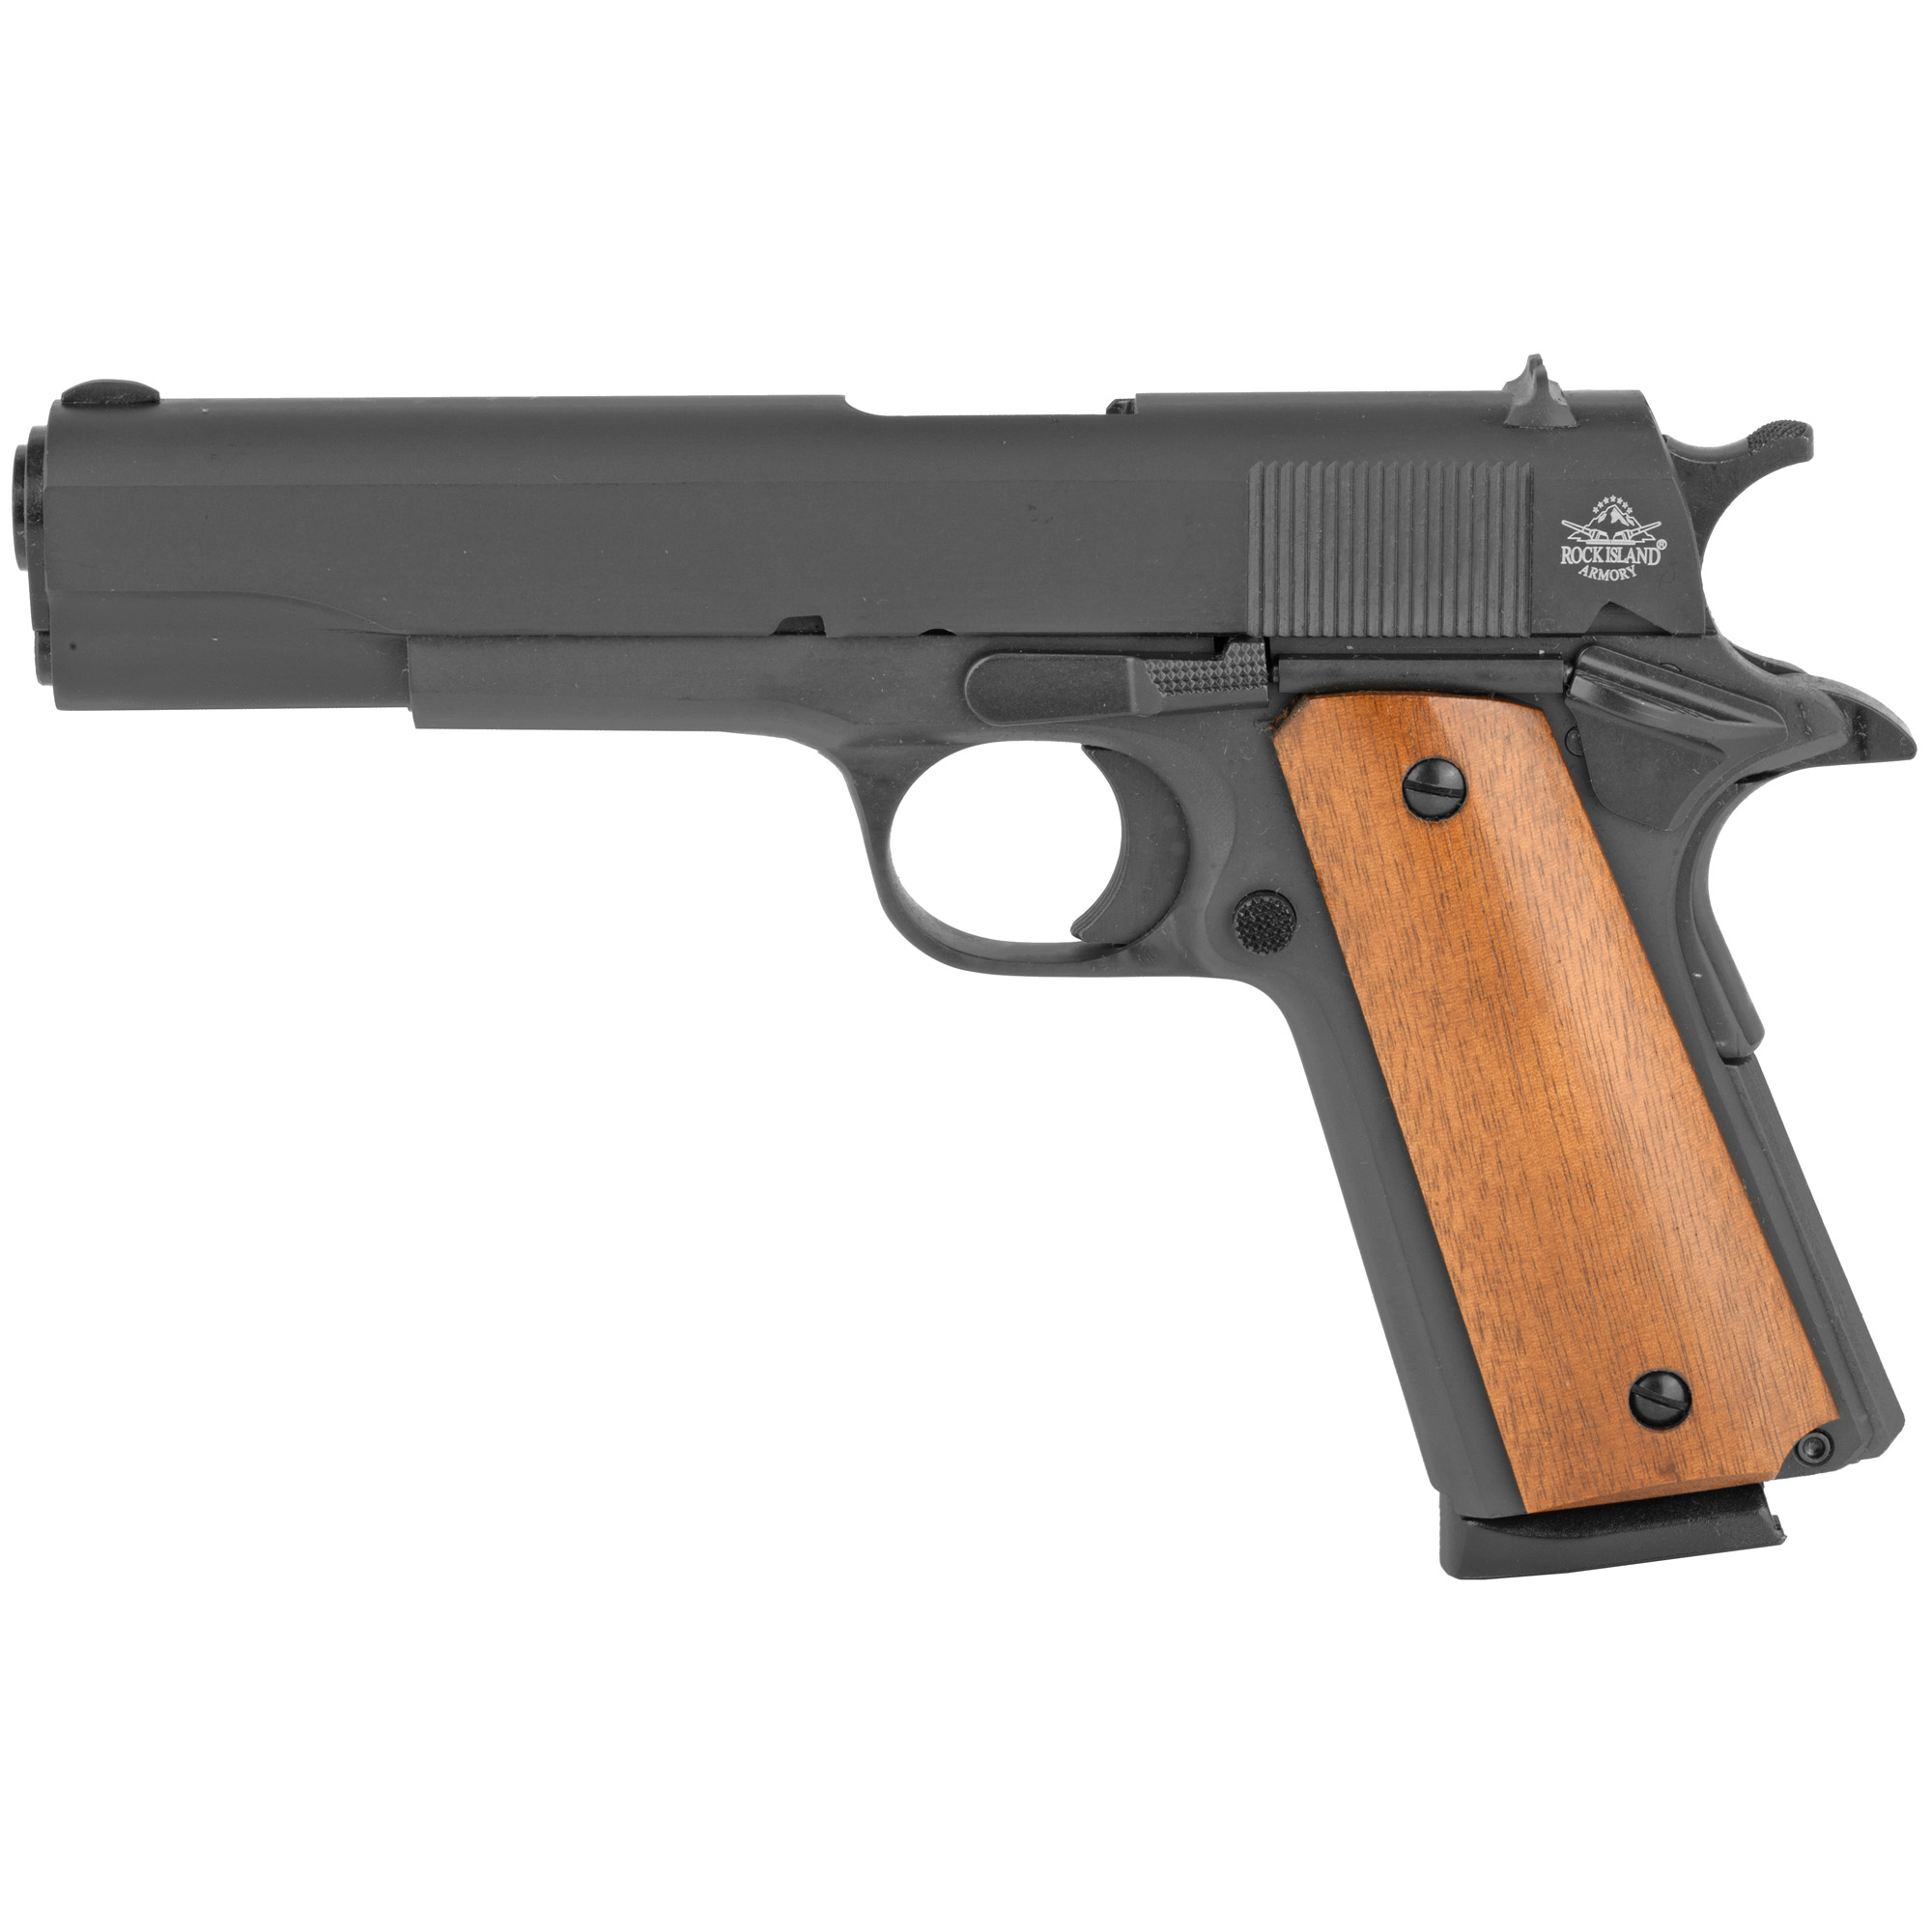 """Built to true Series 70 design"""" Rock Island Armory has the most well-built and versatile 1911s available today at a price point that is not achieved by any other manufacturer. Each firearm is built using 4140 Ordnance steel and engineered using the latest CNC machines. All 1911s are hand-fitted and confirmed to meet strict tolerance and quality requirements in tightness"""" smoothness and overall look and feel."""